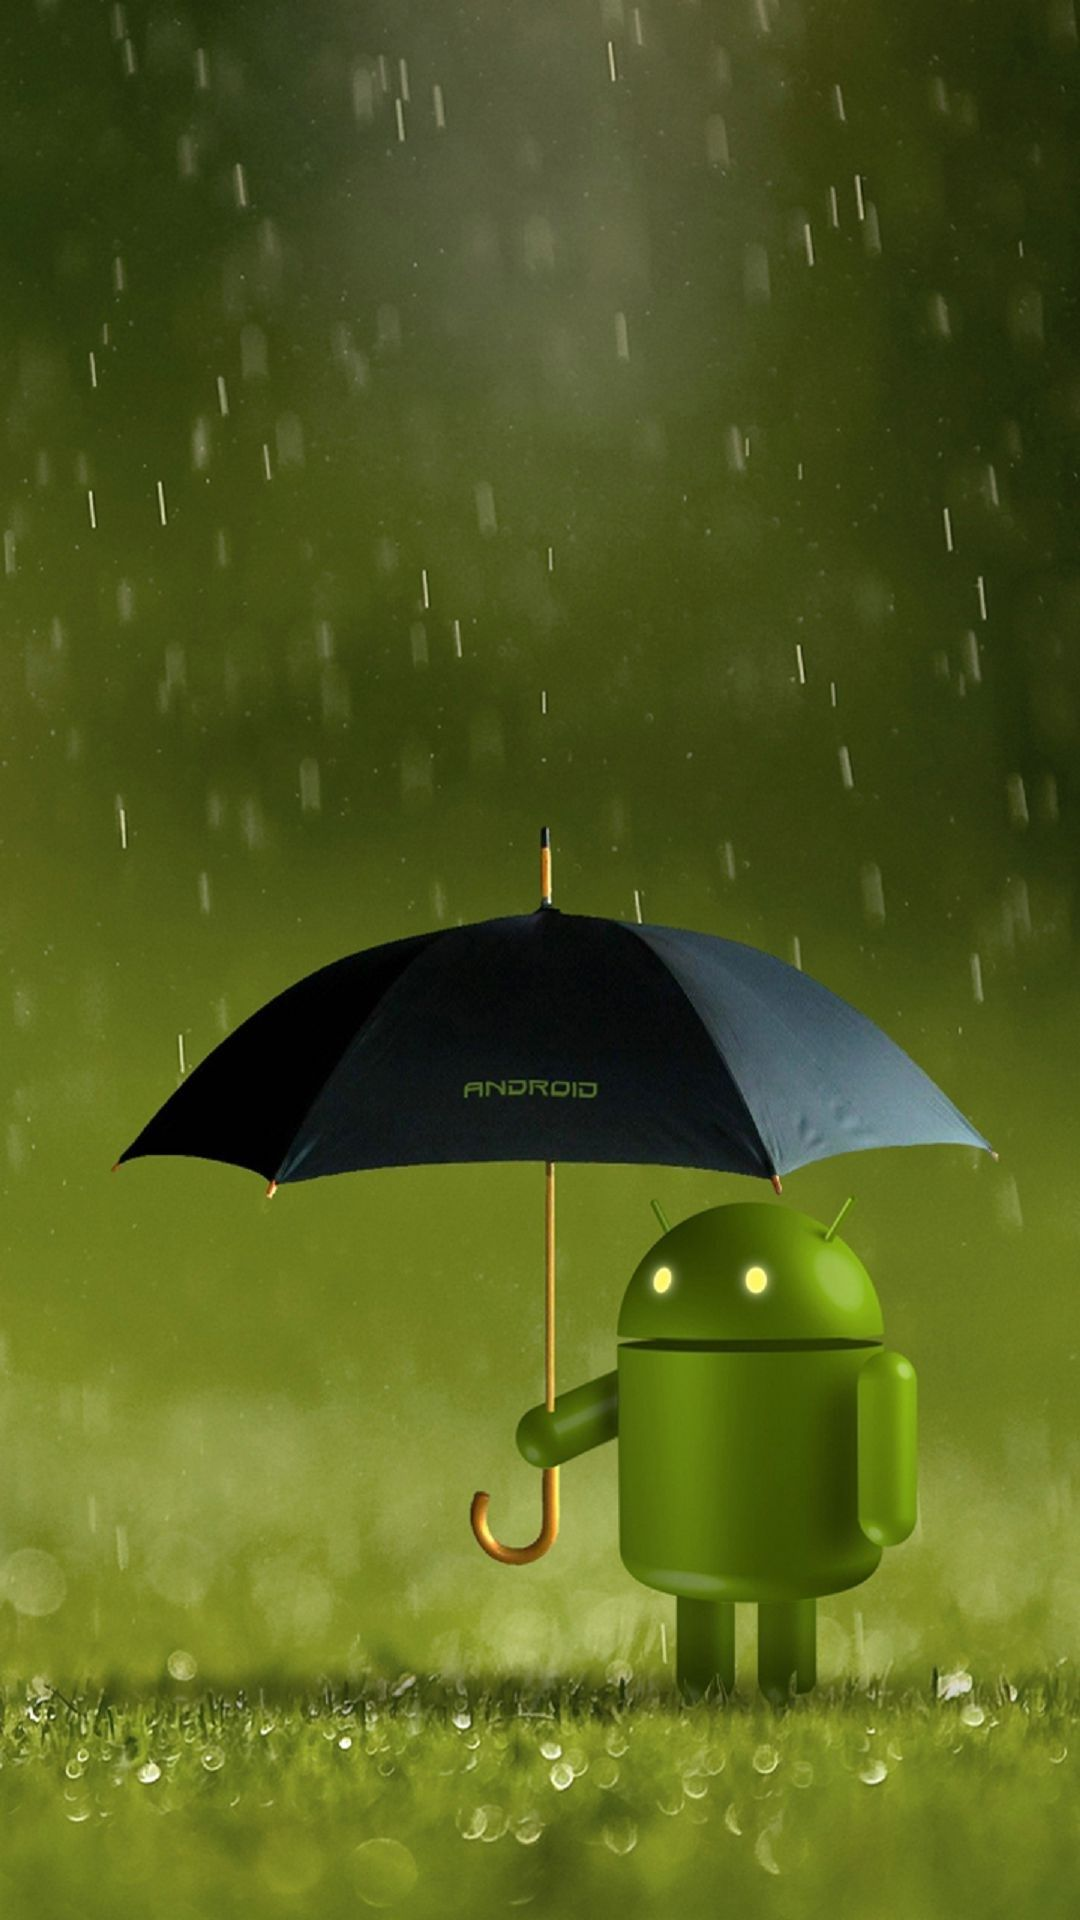 android robot wallpaper for android